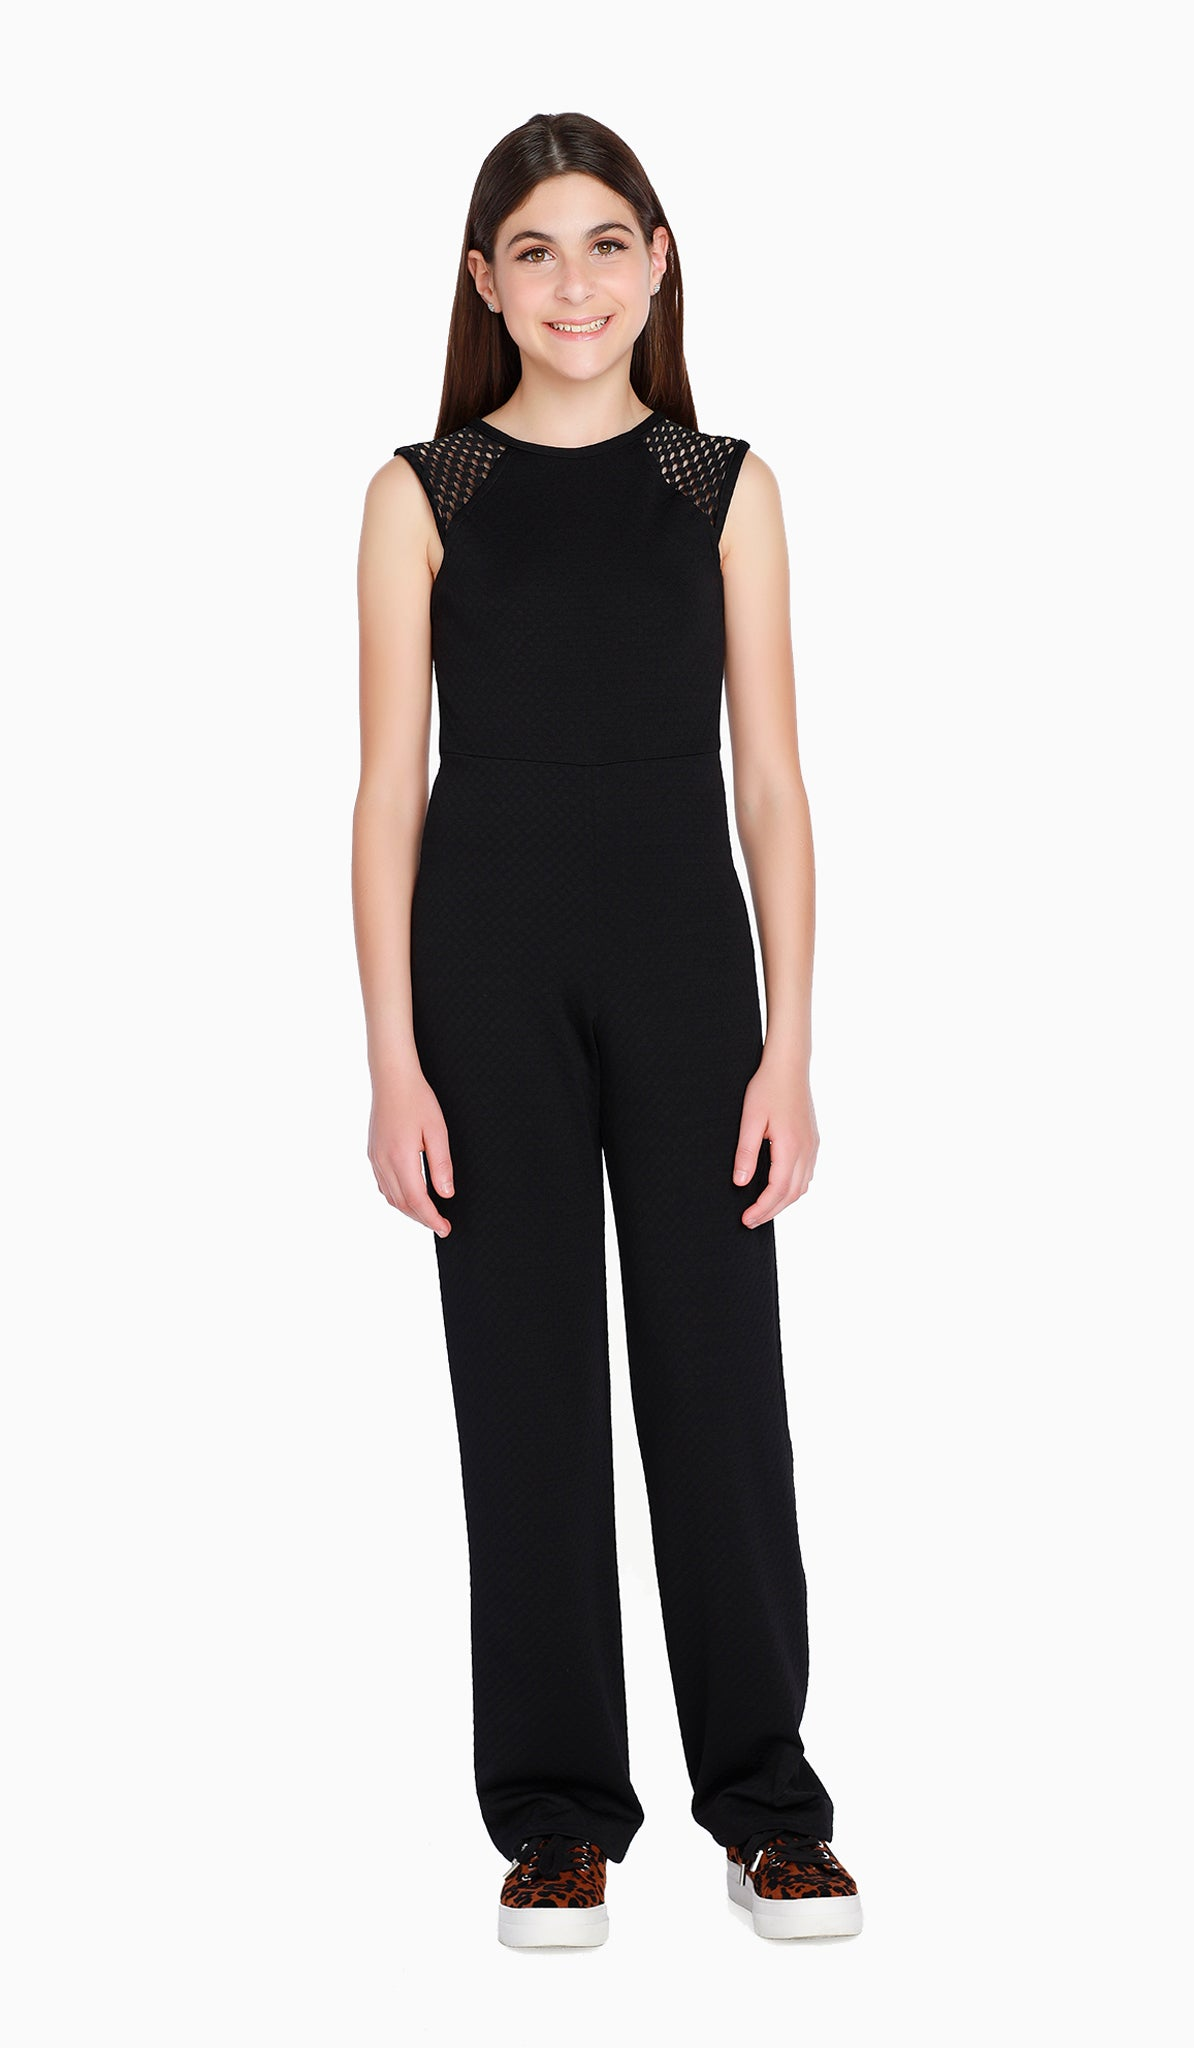 THE CHARLOTTE JUMPSUIT - Sallymiller.com - [variant title] - | Event & Party Dresses for Tween Girls & Juniors | Weddings Dresses, Bat Mitzvah Dresses, Sweet Sixteen Dresses, Graduation Dresses, Birthday Party Dresses, Bar Mitzvah Dresses, Cotillion Dresses